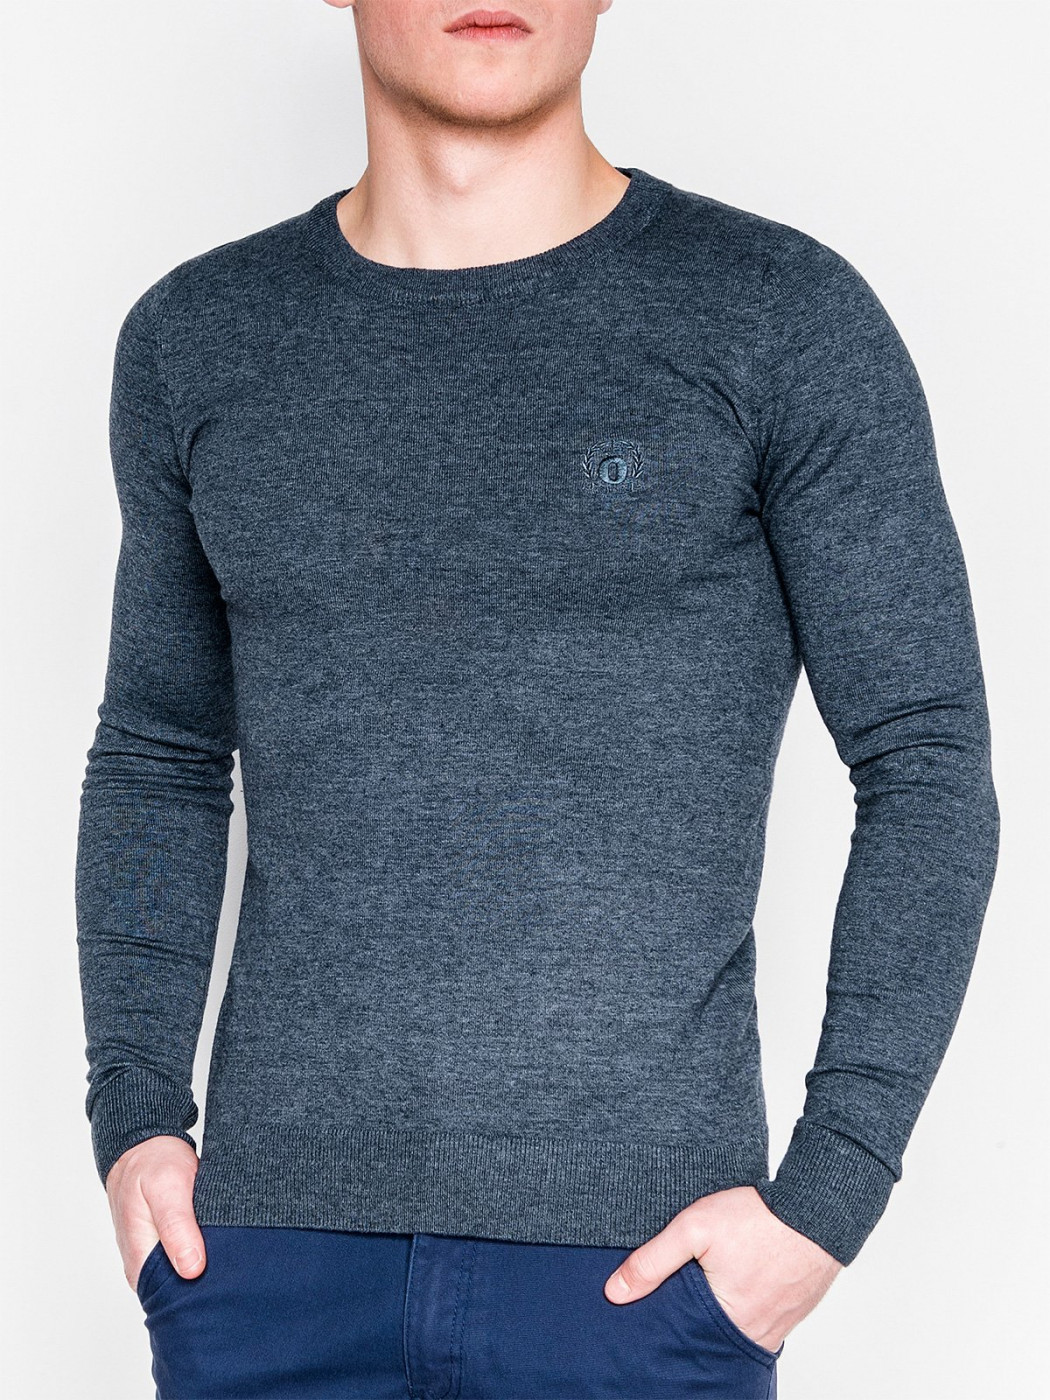 Ombre Clothing Men's sweater E122